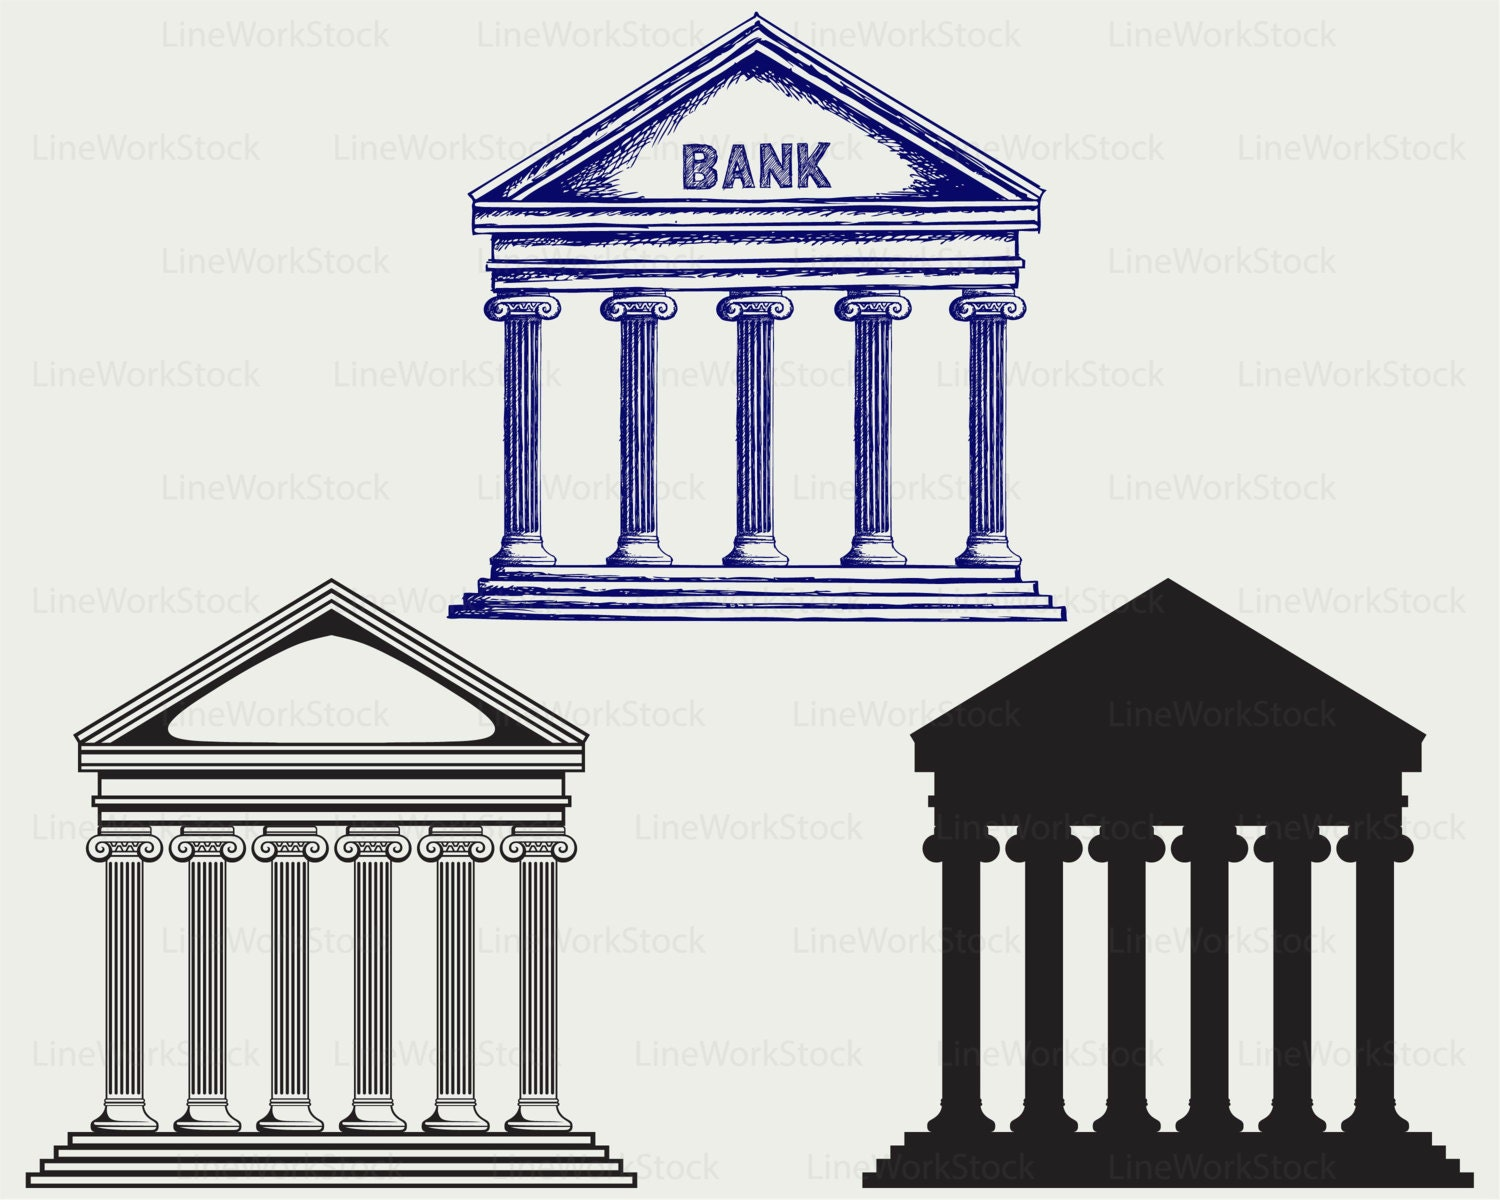 bank svg bank clipart bank svg bank silhouette bank cricut banking clip art with people banking clipart free